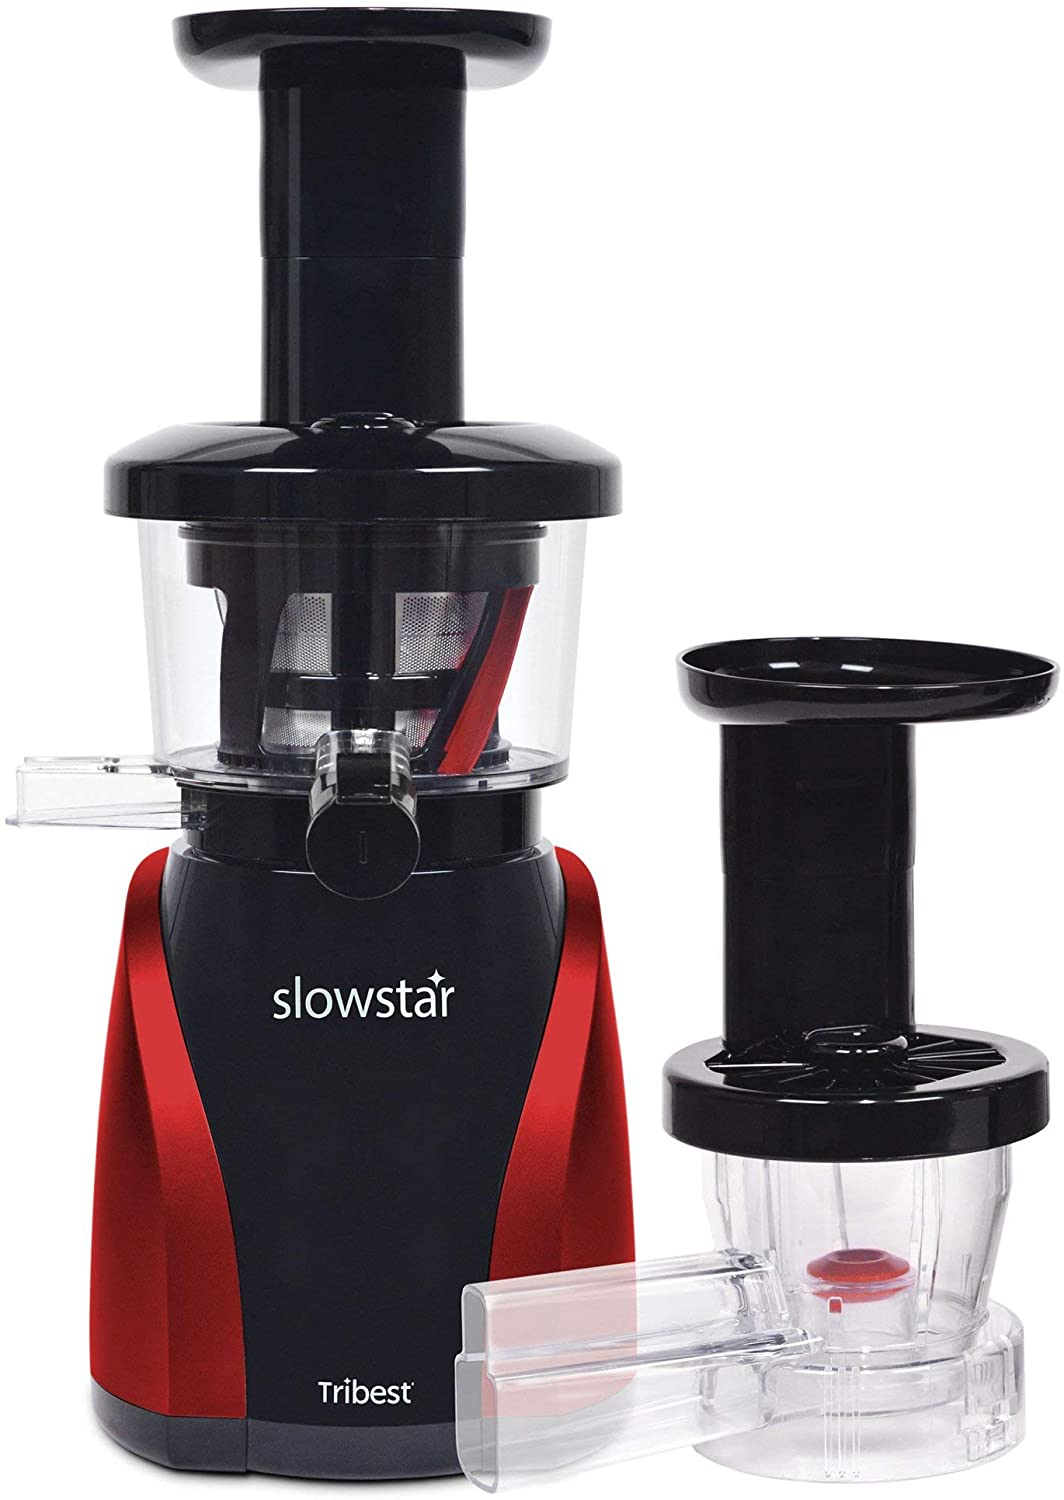 4.	Tribest SW-2000-B Slowstar Vertical Juicer